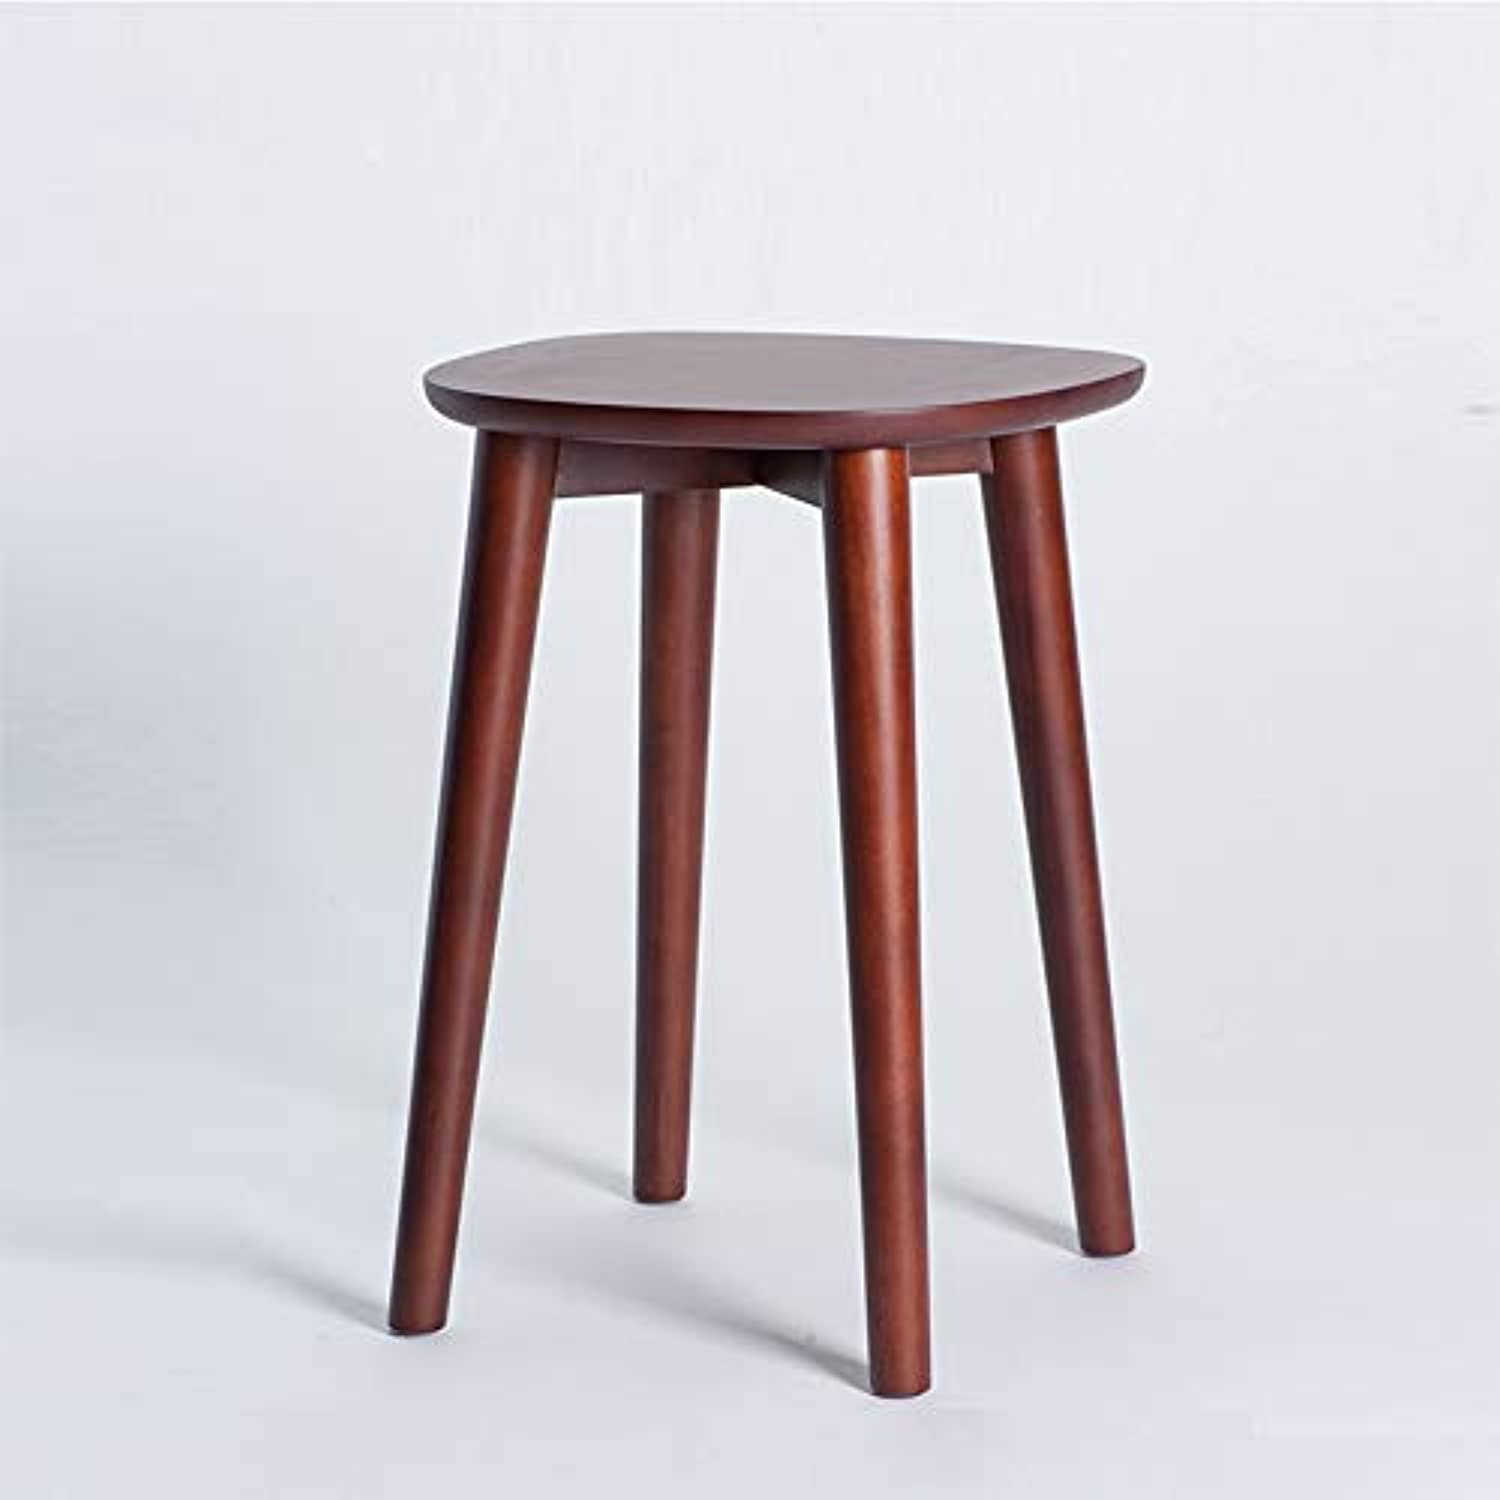 Nordic Thailand Rubber Solid Wood Stool Restaurant Stool Dining Chair Round Stool Home Hotel Restaurant Furniture (color   Walnut color)